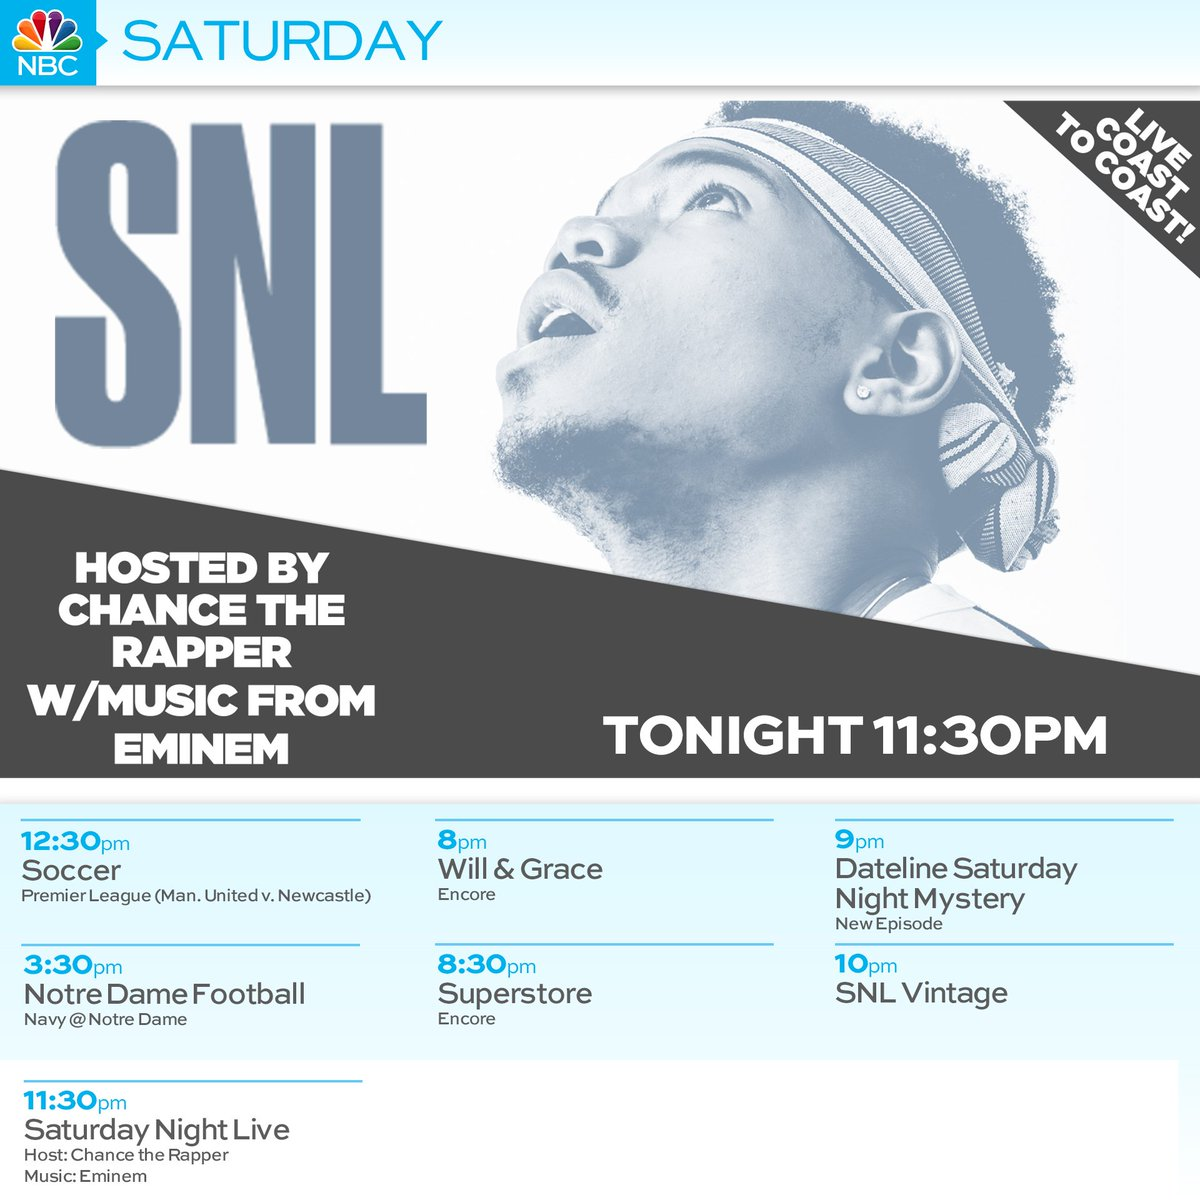 Wwlp 22news A Twitter Tonight On 22news Nbc Snl Is Live Coast To Coast With Host Chancetherapper And Musical Guest Eminem Https T Co Bygz1l68hw Https T Co Pfnvt8ihze